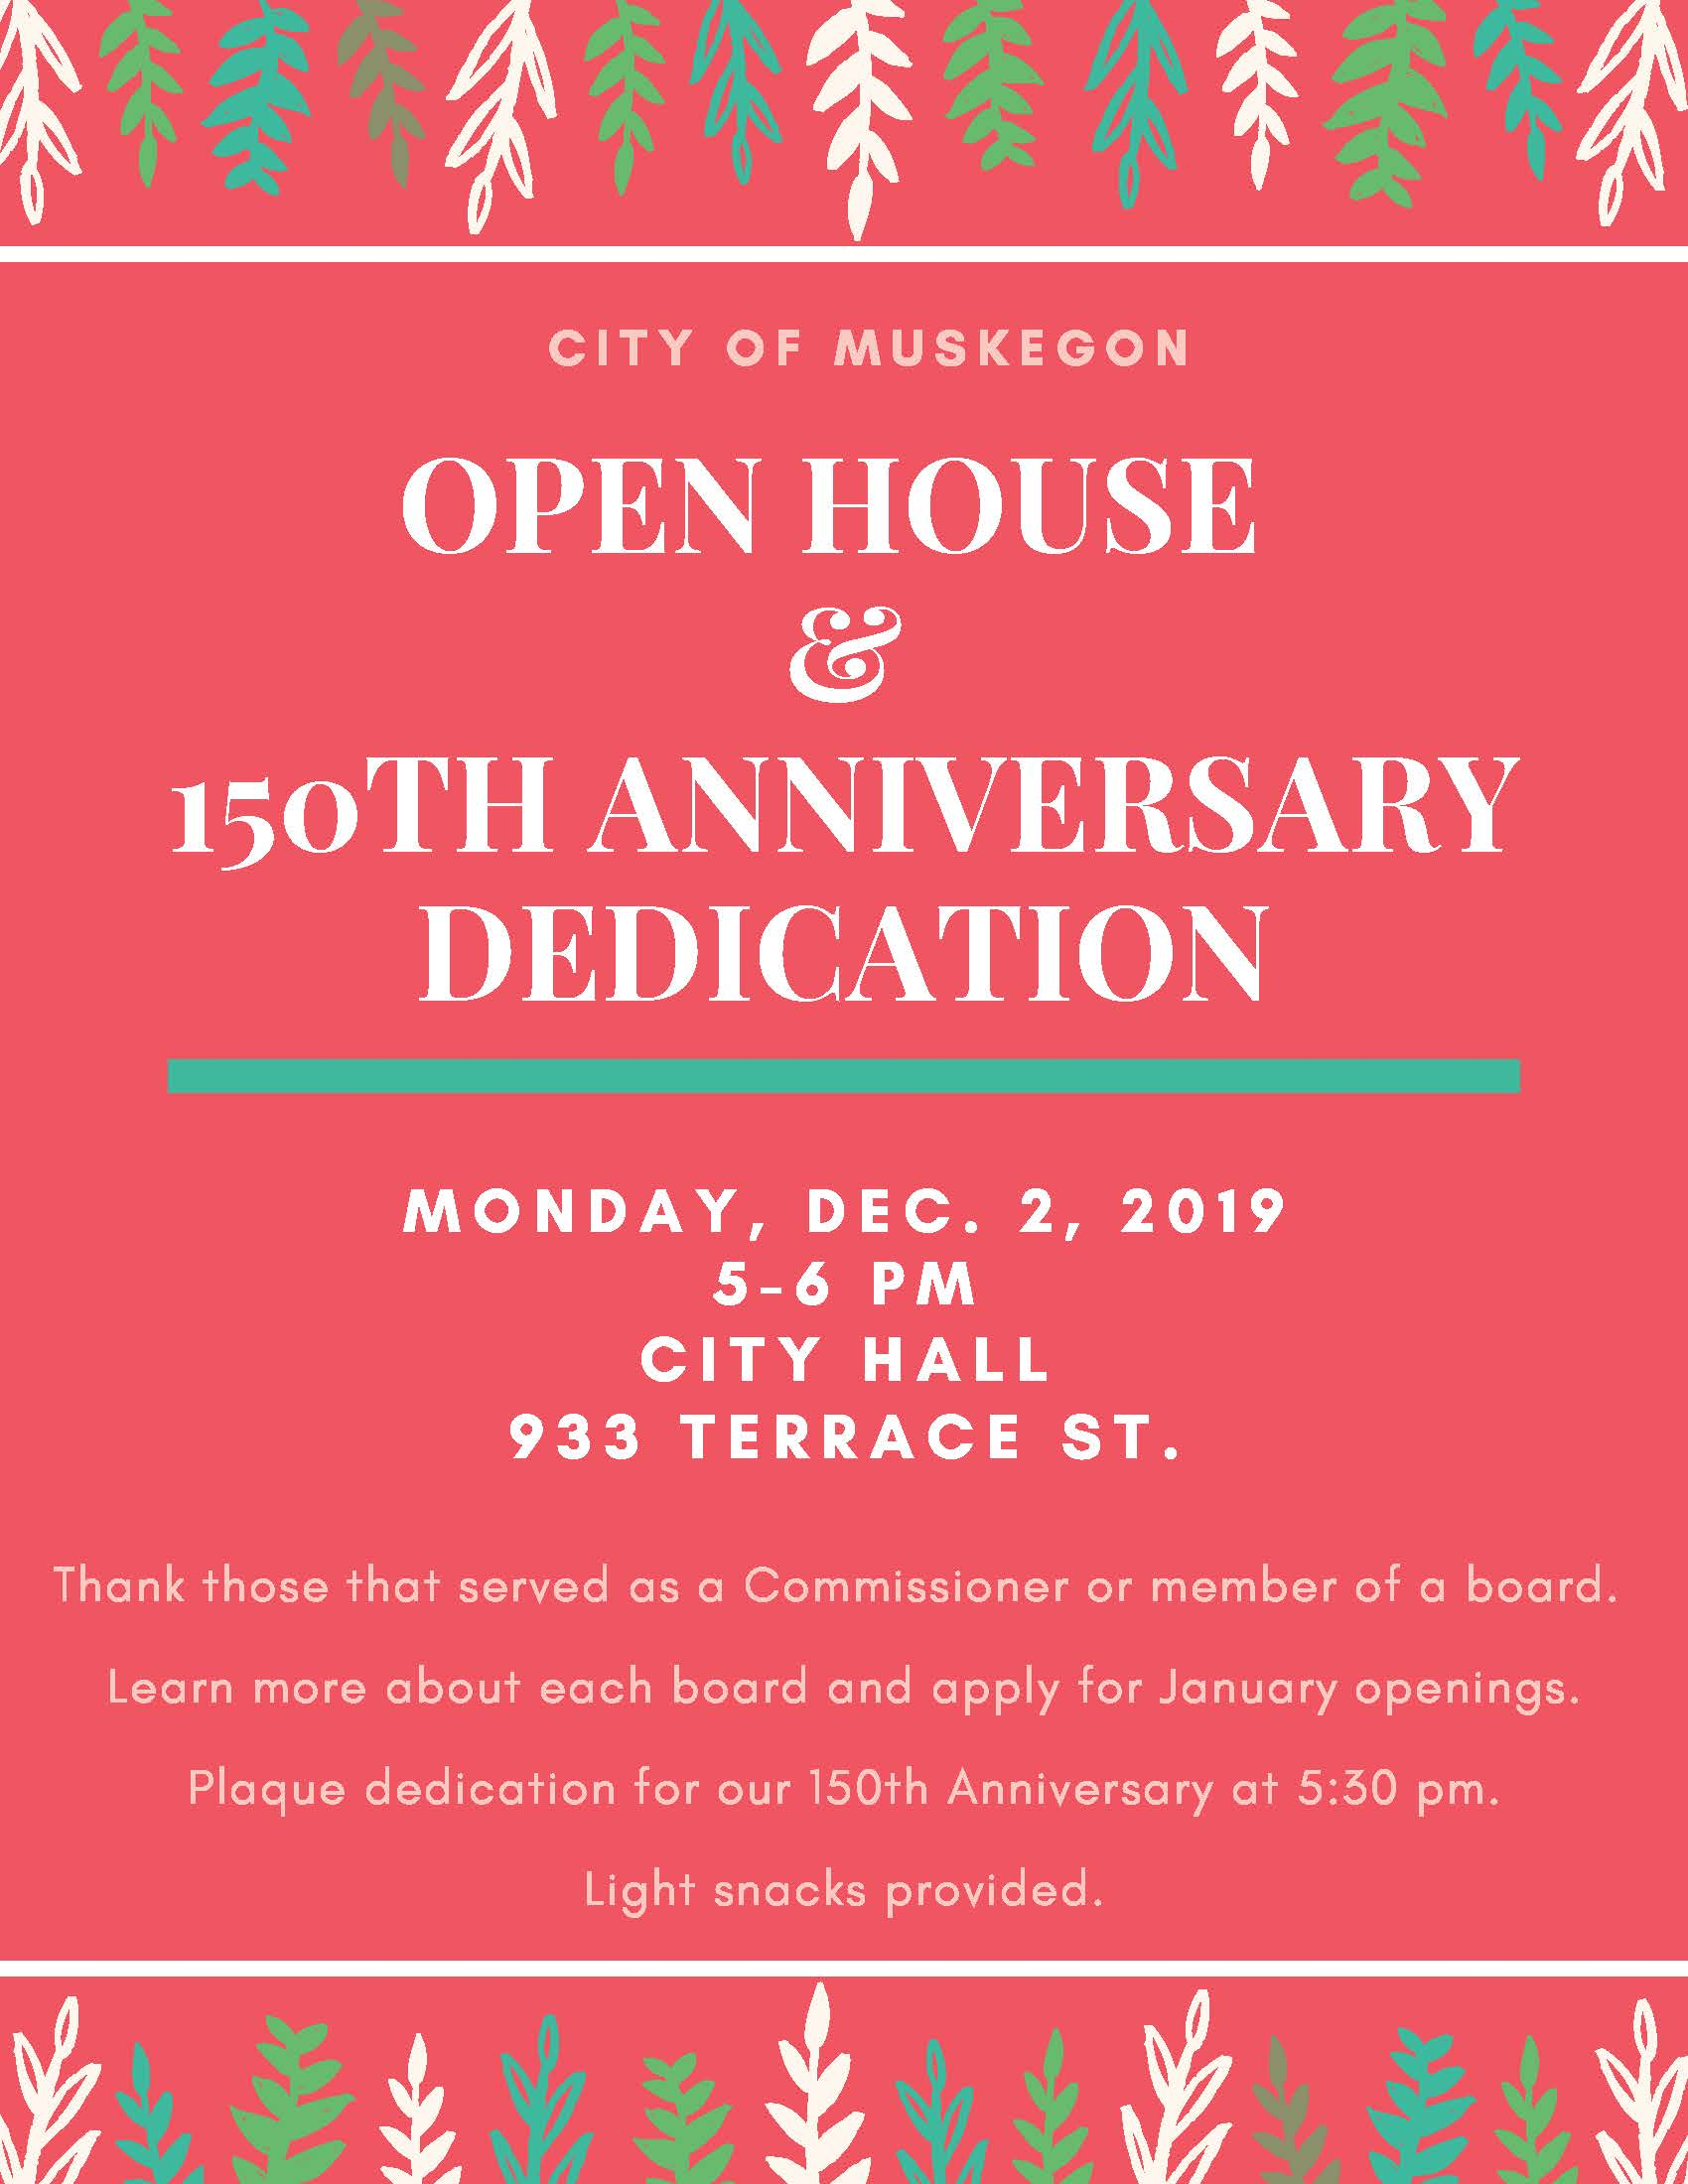 Open House & 150th Anniversary Dedication